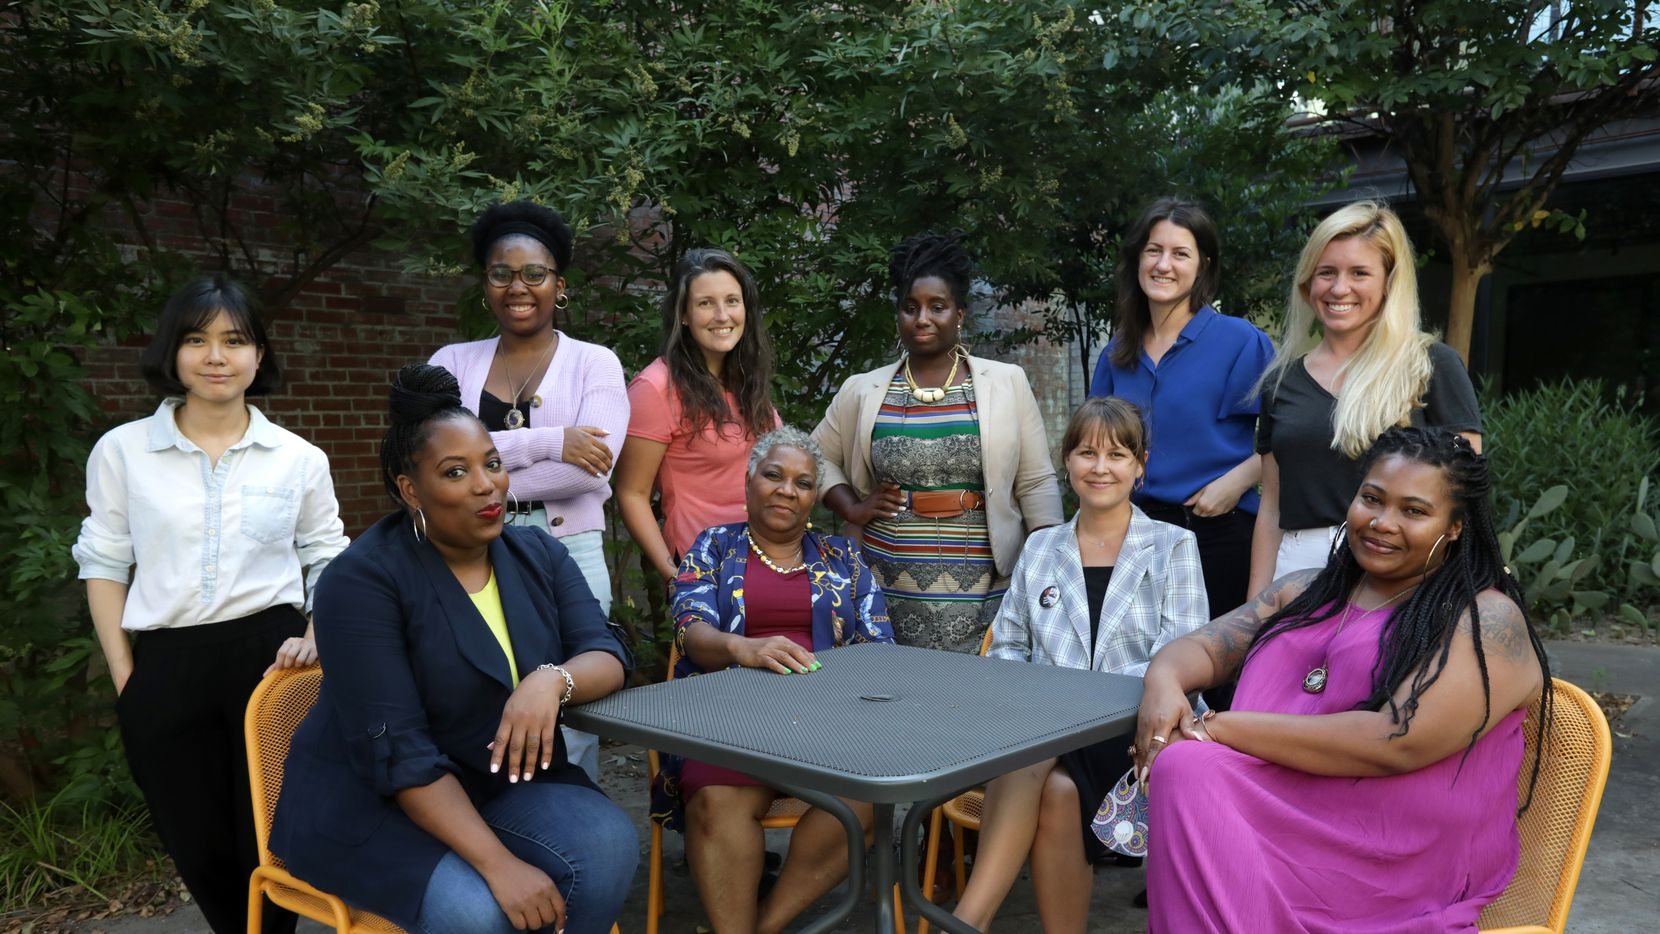 Members of Downwinders at Risk board. Front row from left, Satavia Hopkins, Marsha Jackson, Evelyn Mayo and Misti O'Quinn. Back row: Cindy Hua, Essence Tetteh, Amanda Poland, Cressanda Allen, Shannon Vorpahl and Michelle McAdam. Not shown: Amber Wang and Idania Carranza.